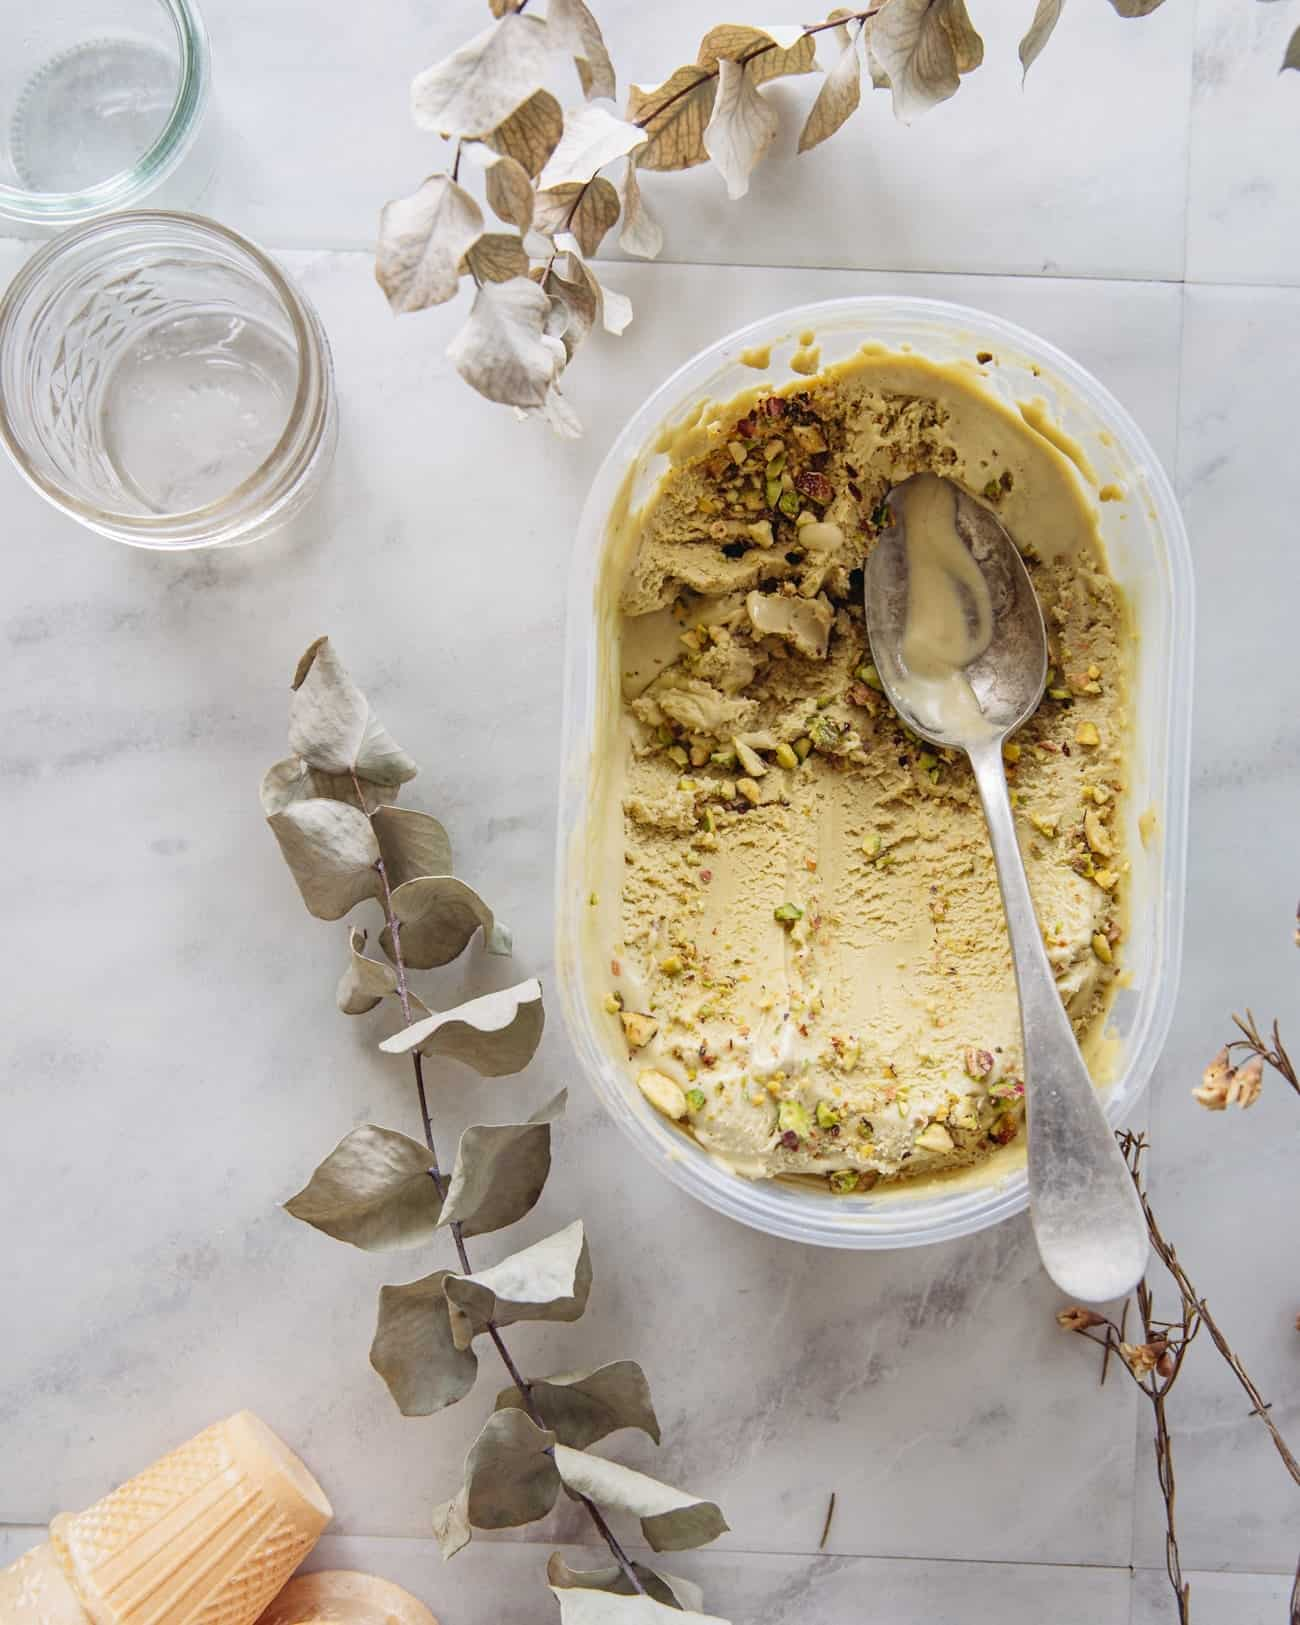 a tub of pistachio ice cream with a spoon